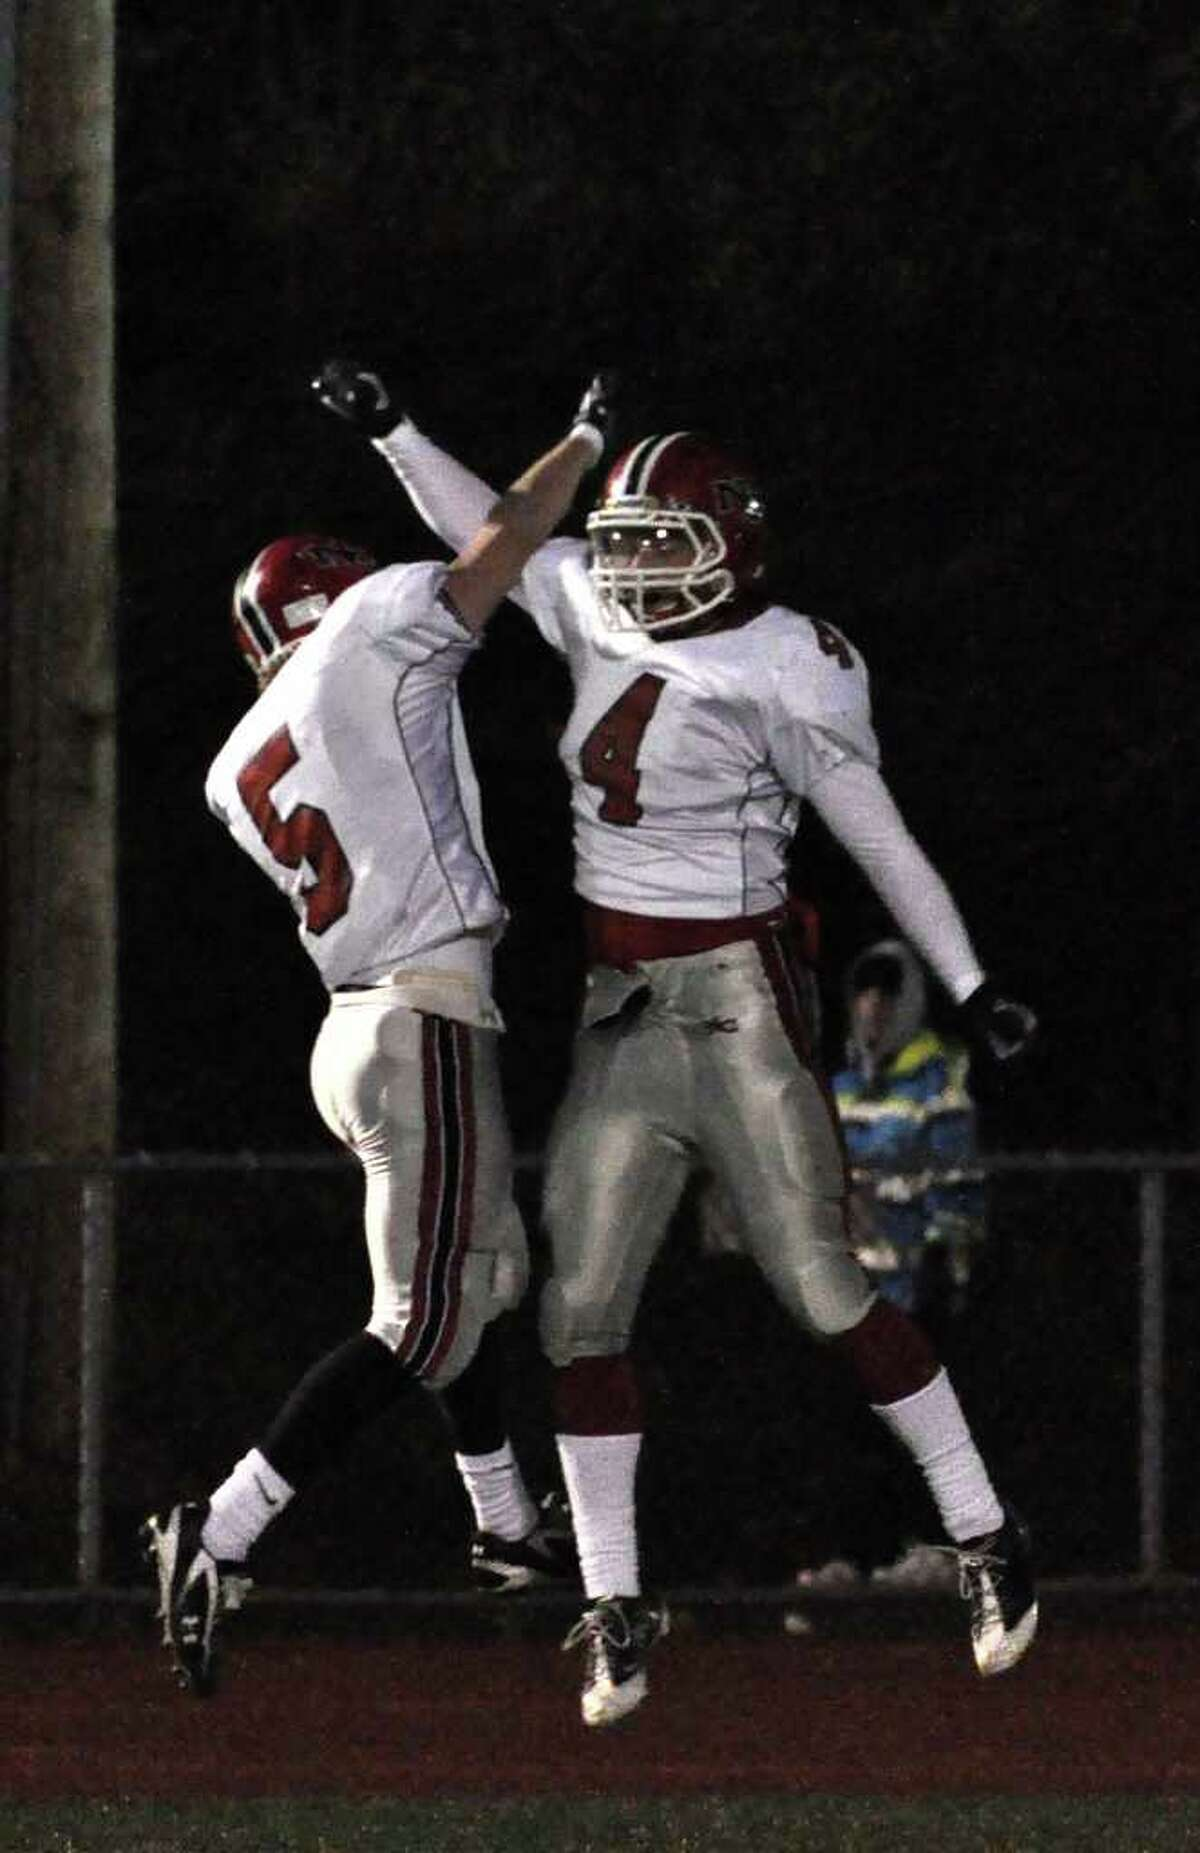 New Canaan's Joseph Costigan (5) and teammate Kevin Macari (4) celebrate a touchdown during the CIAC Class L semifinals against Daniel Hand at Ken Strong Stadium in West Haven on Saturday, Dec. 4, 2010.